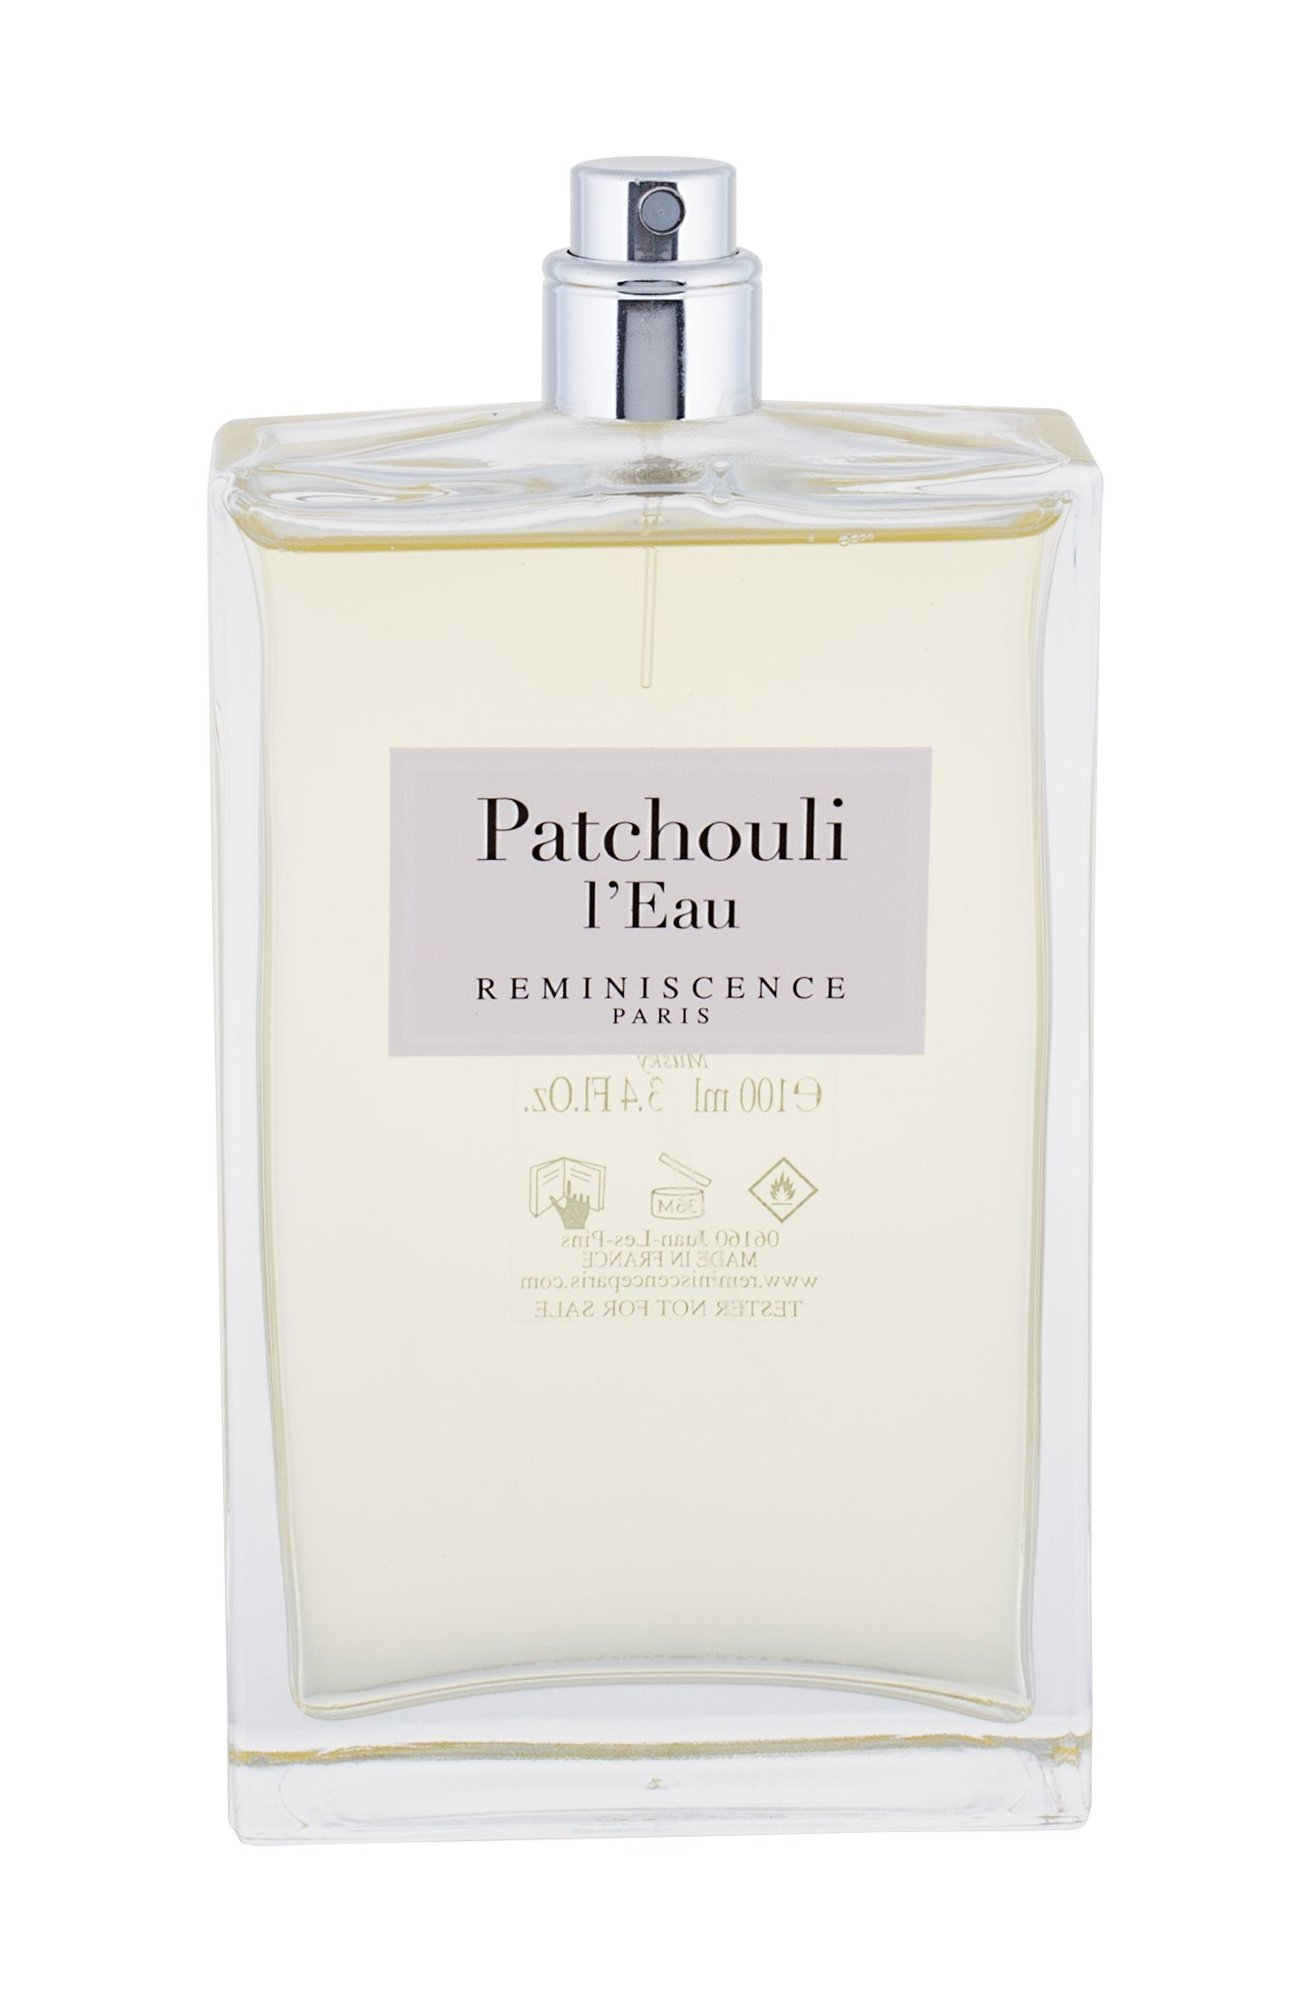 Reminiscence Eau de Patchouli EDT 100ml